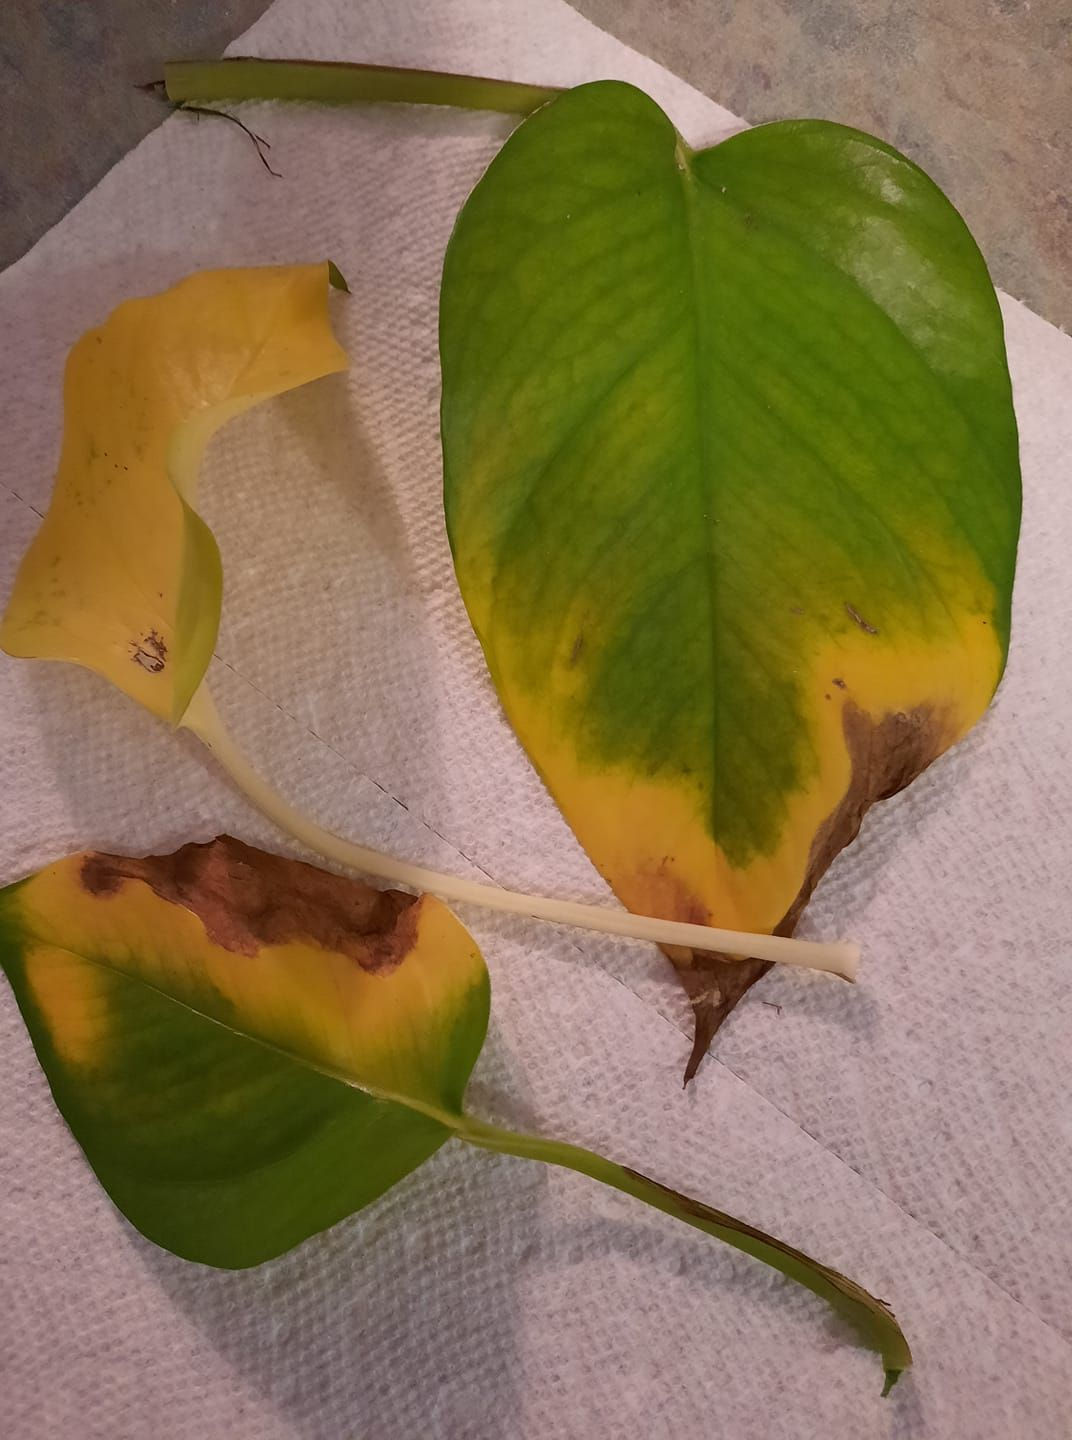 Pothos Plant With Brown And Yellow Leaves In 2021 Plant Leaves Turning Brown Philodendron Plant Pothos Plant